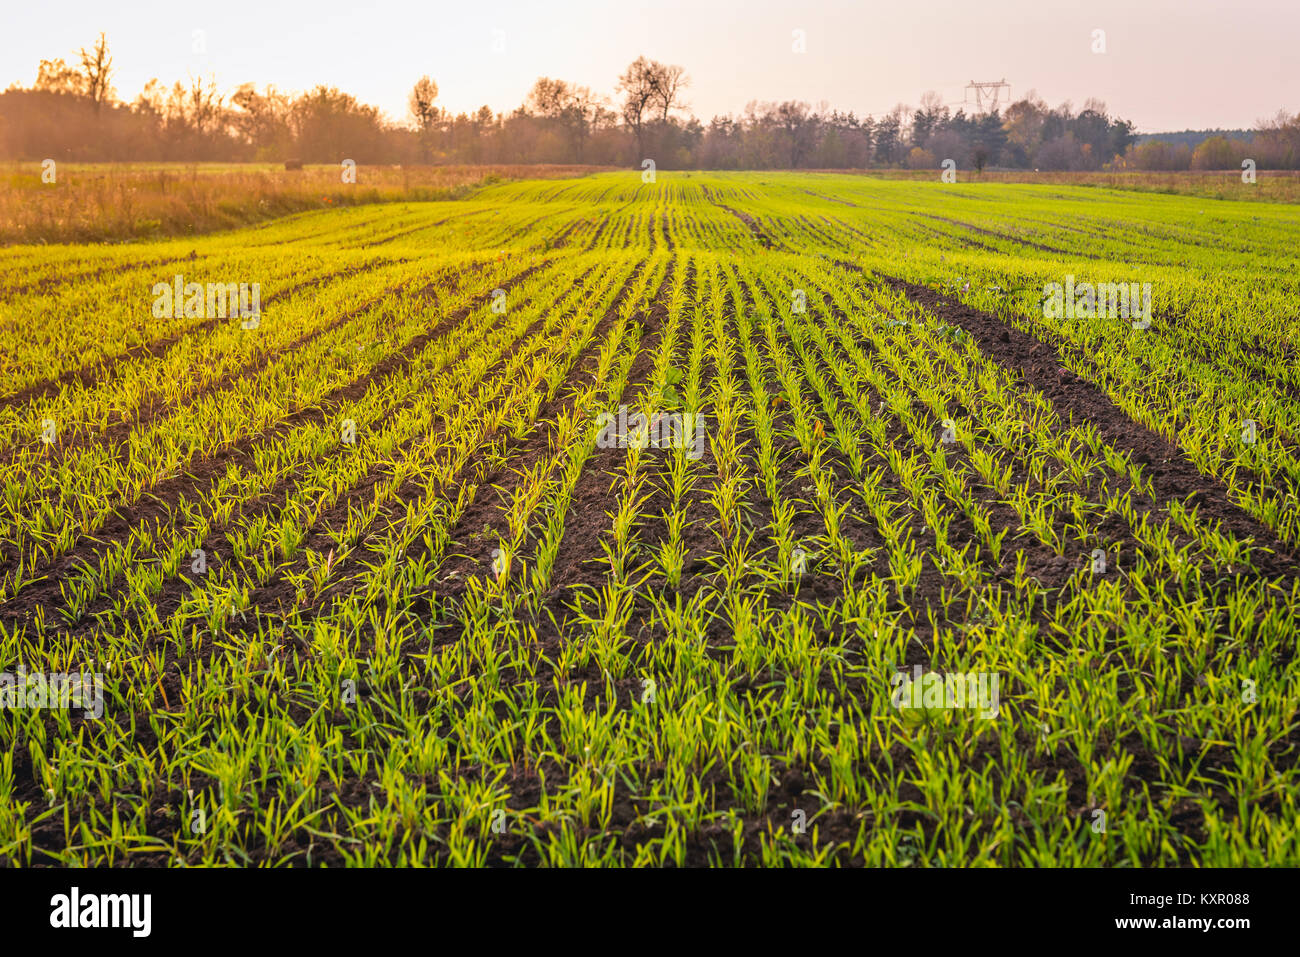 Winter cereal field in Brochow village, Sochaczew County in Masovian Voivodeship of Poland - Stock Image